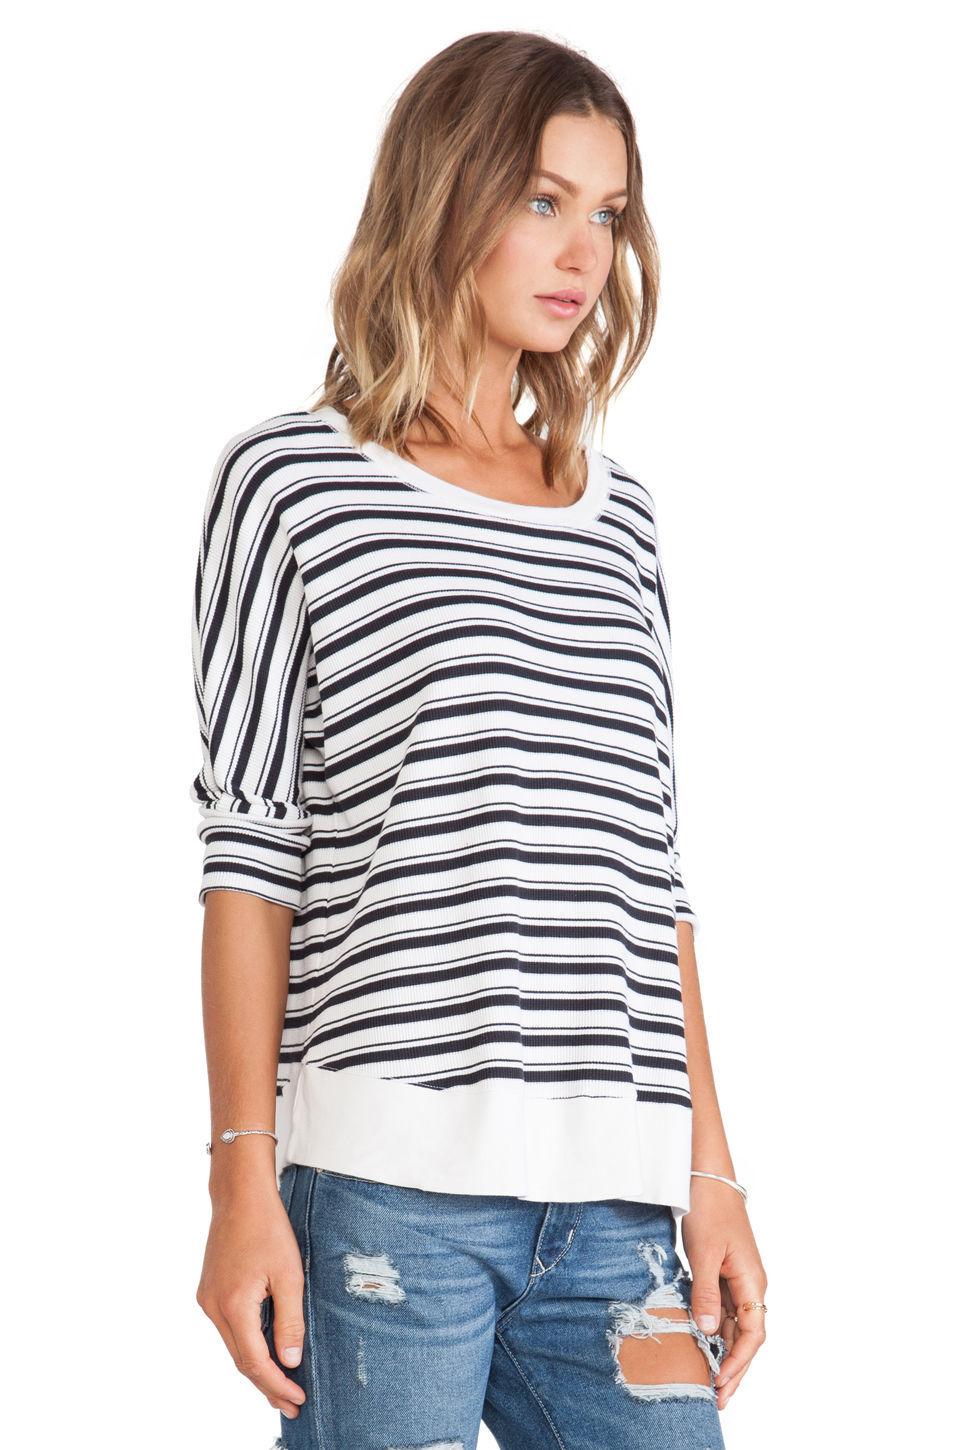 New $98 Women's Splendid Striped Box Top 3/4 Sleeves Sz S & M